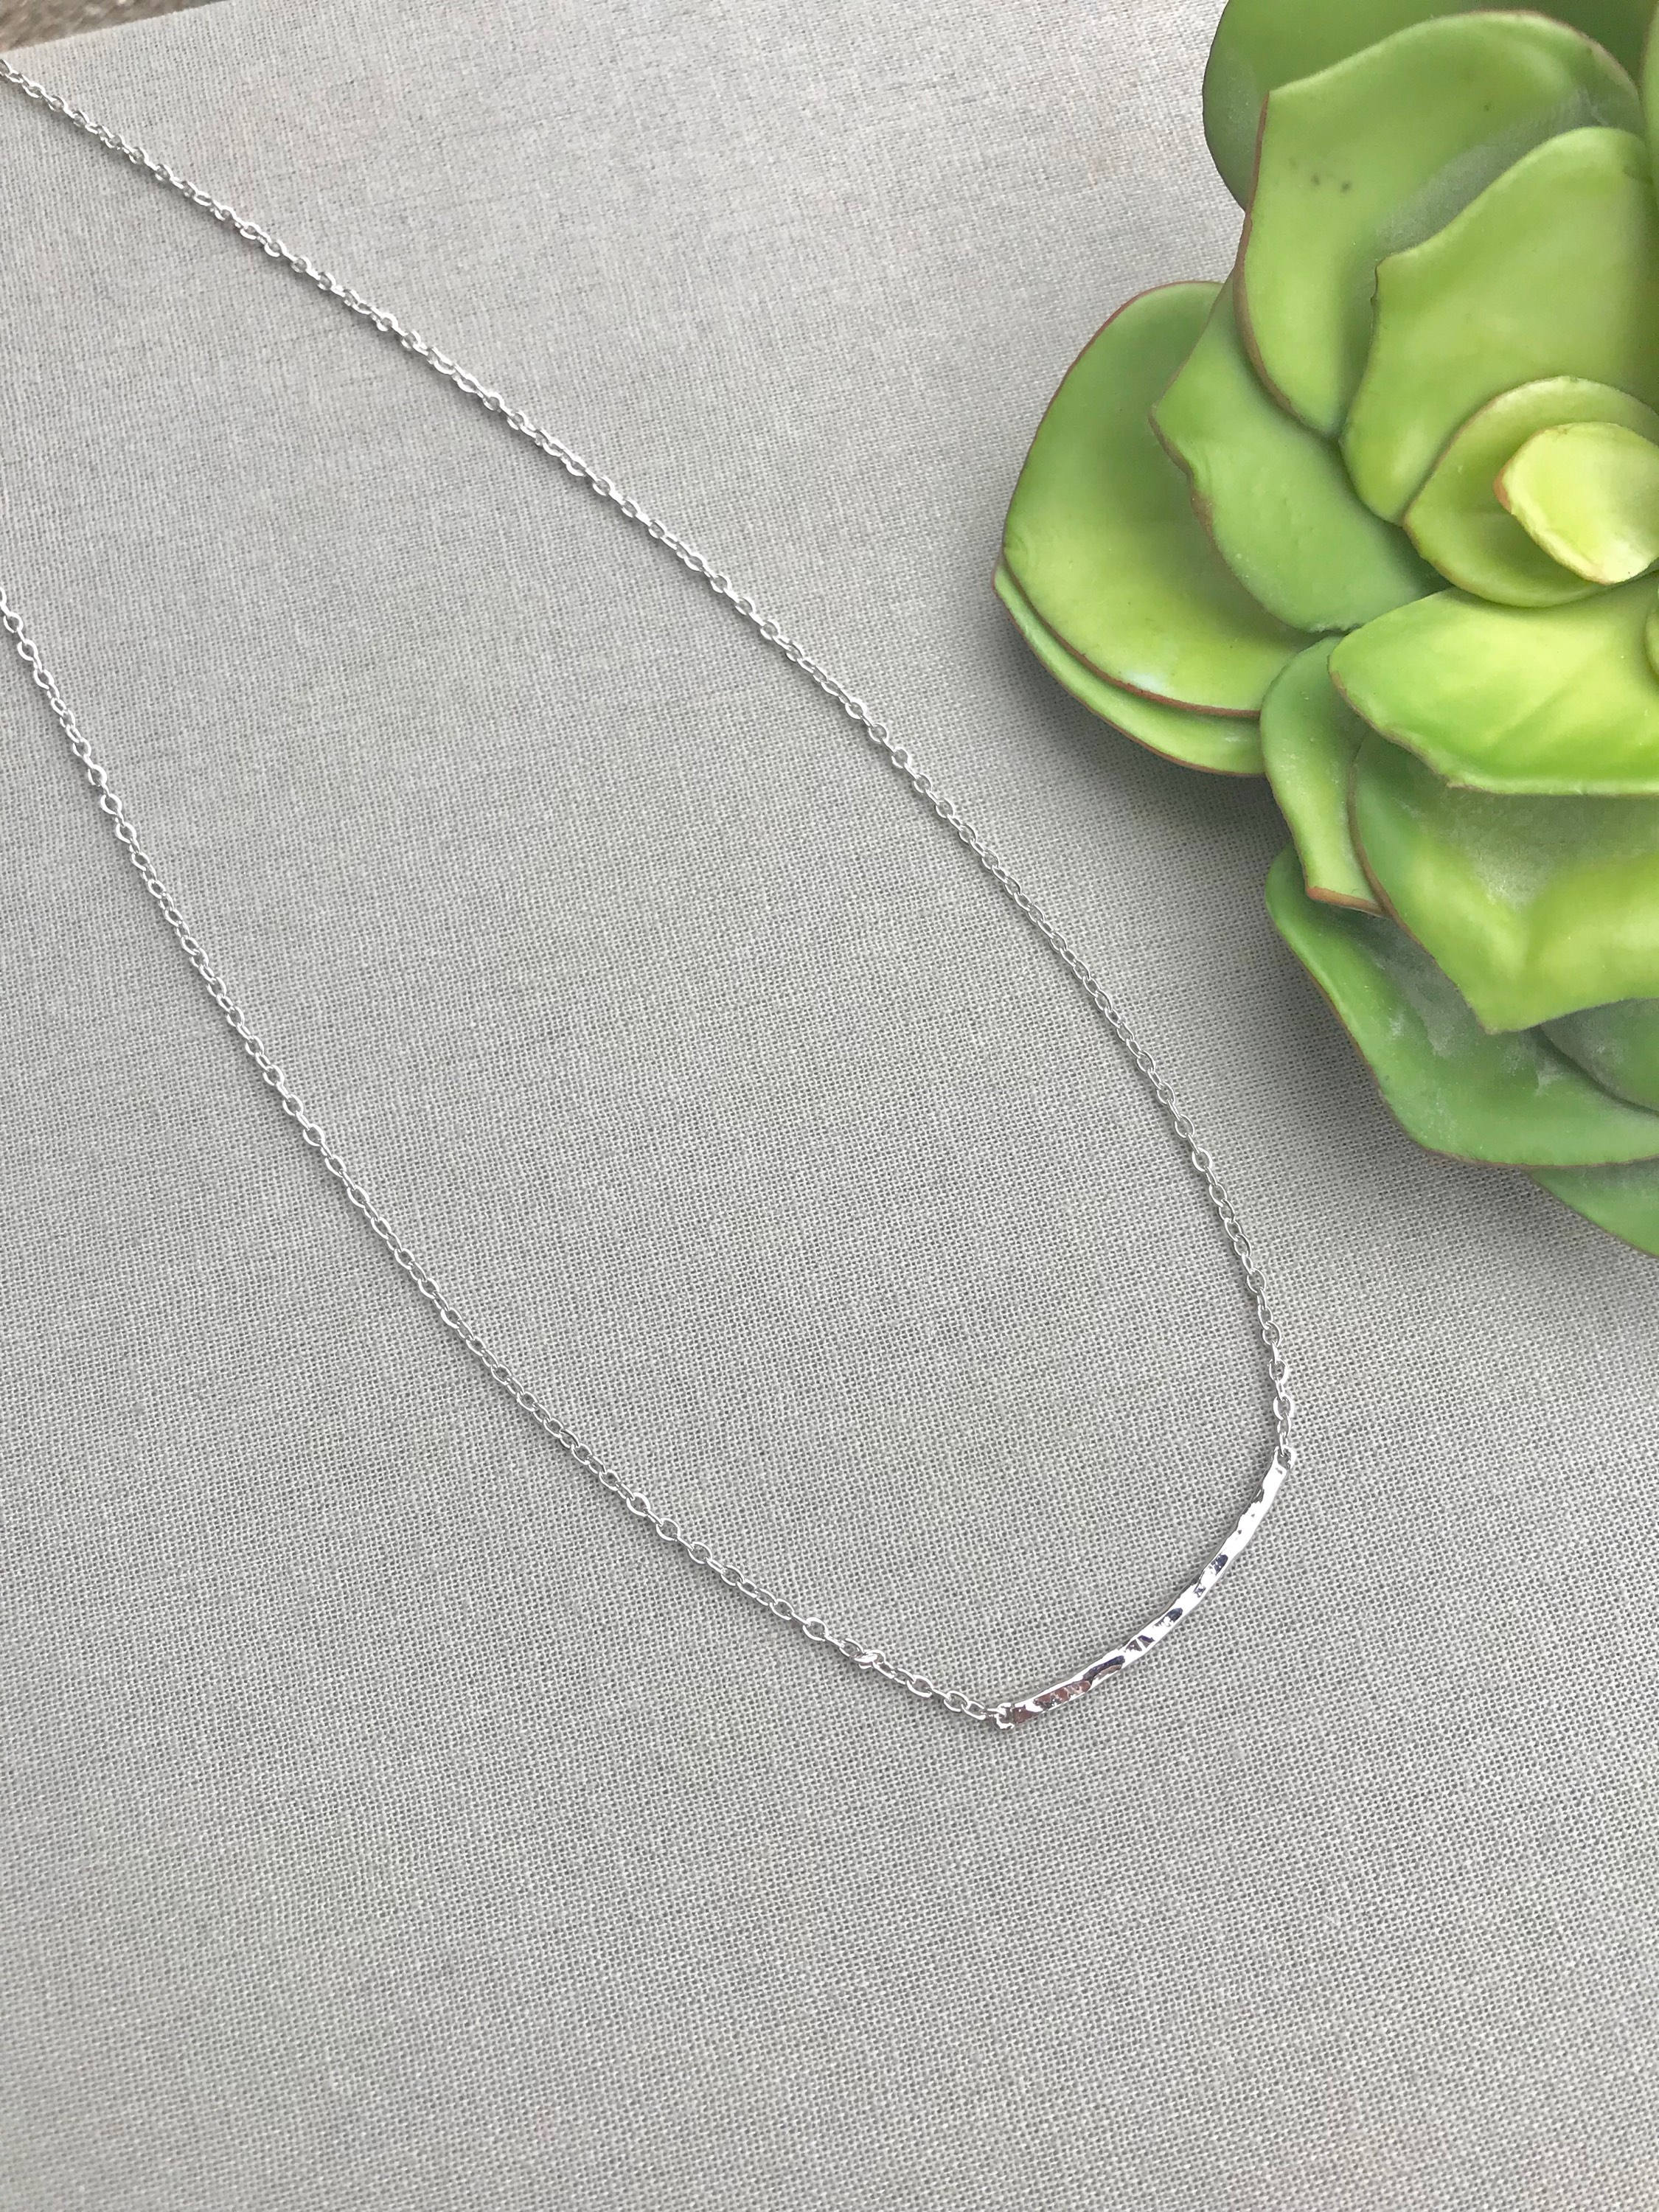 Dainty Silver Curved Bar Necklace